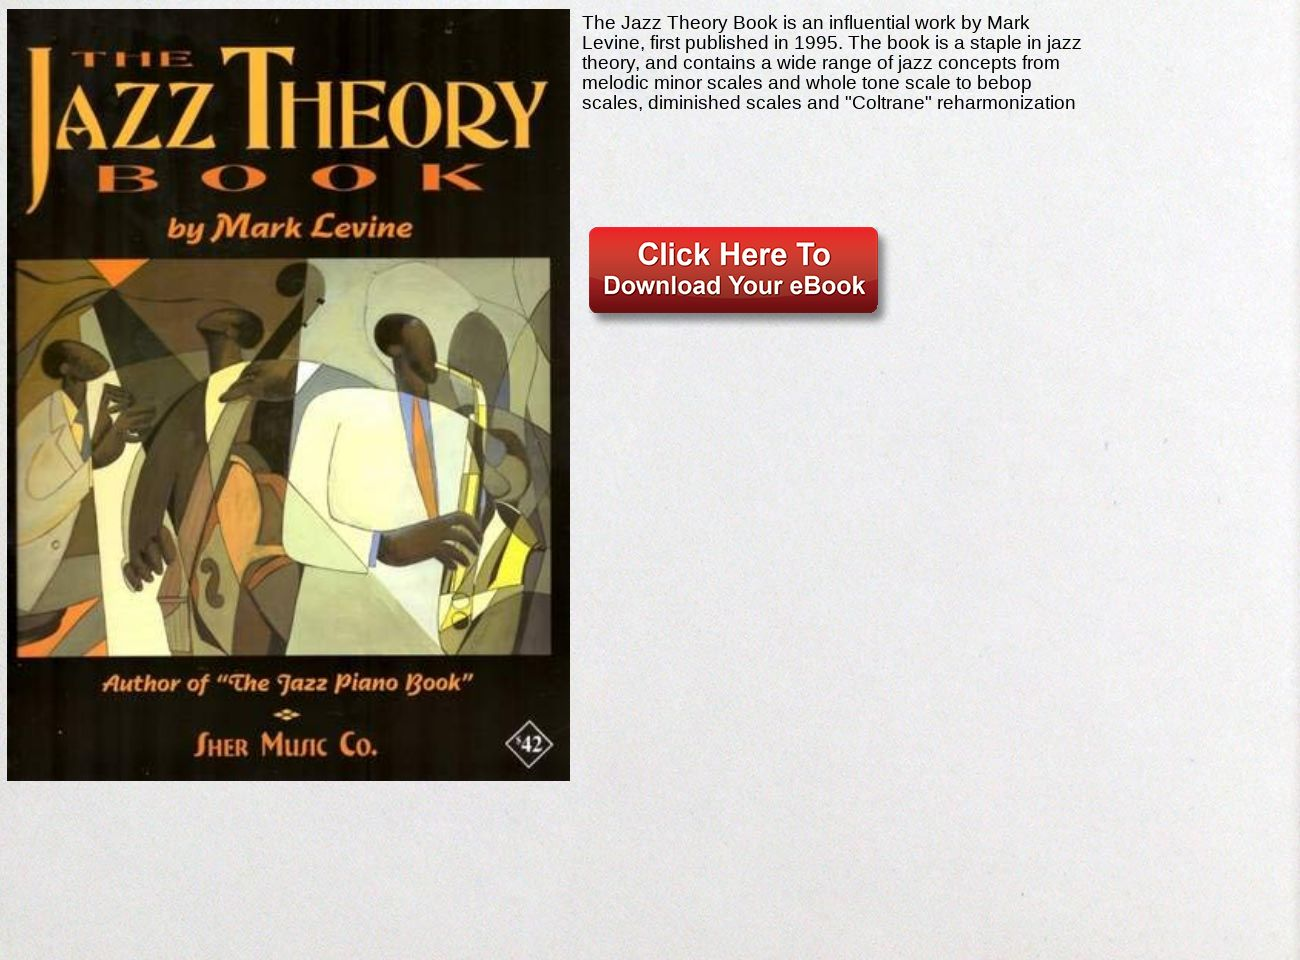 download free The Jazz Theory Book ebook PDF: text, images